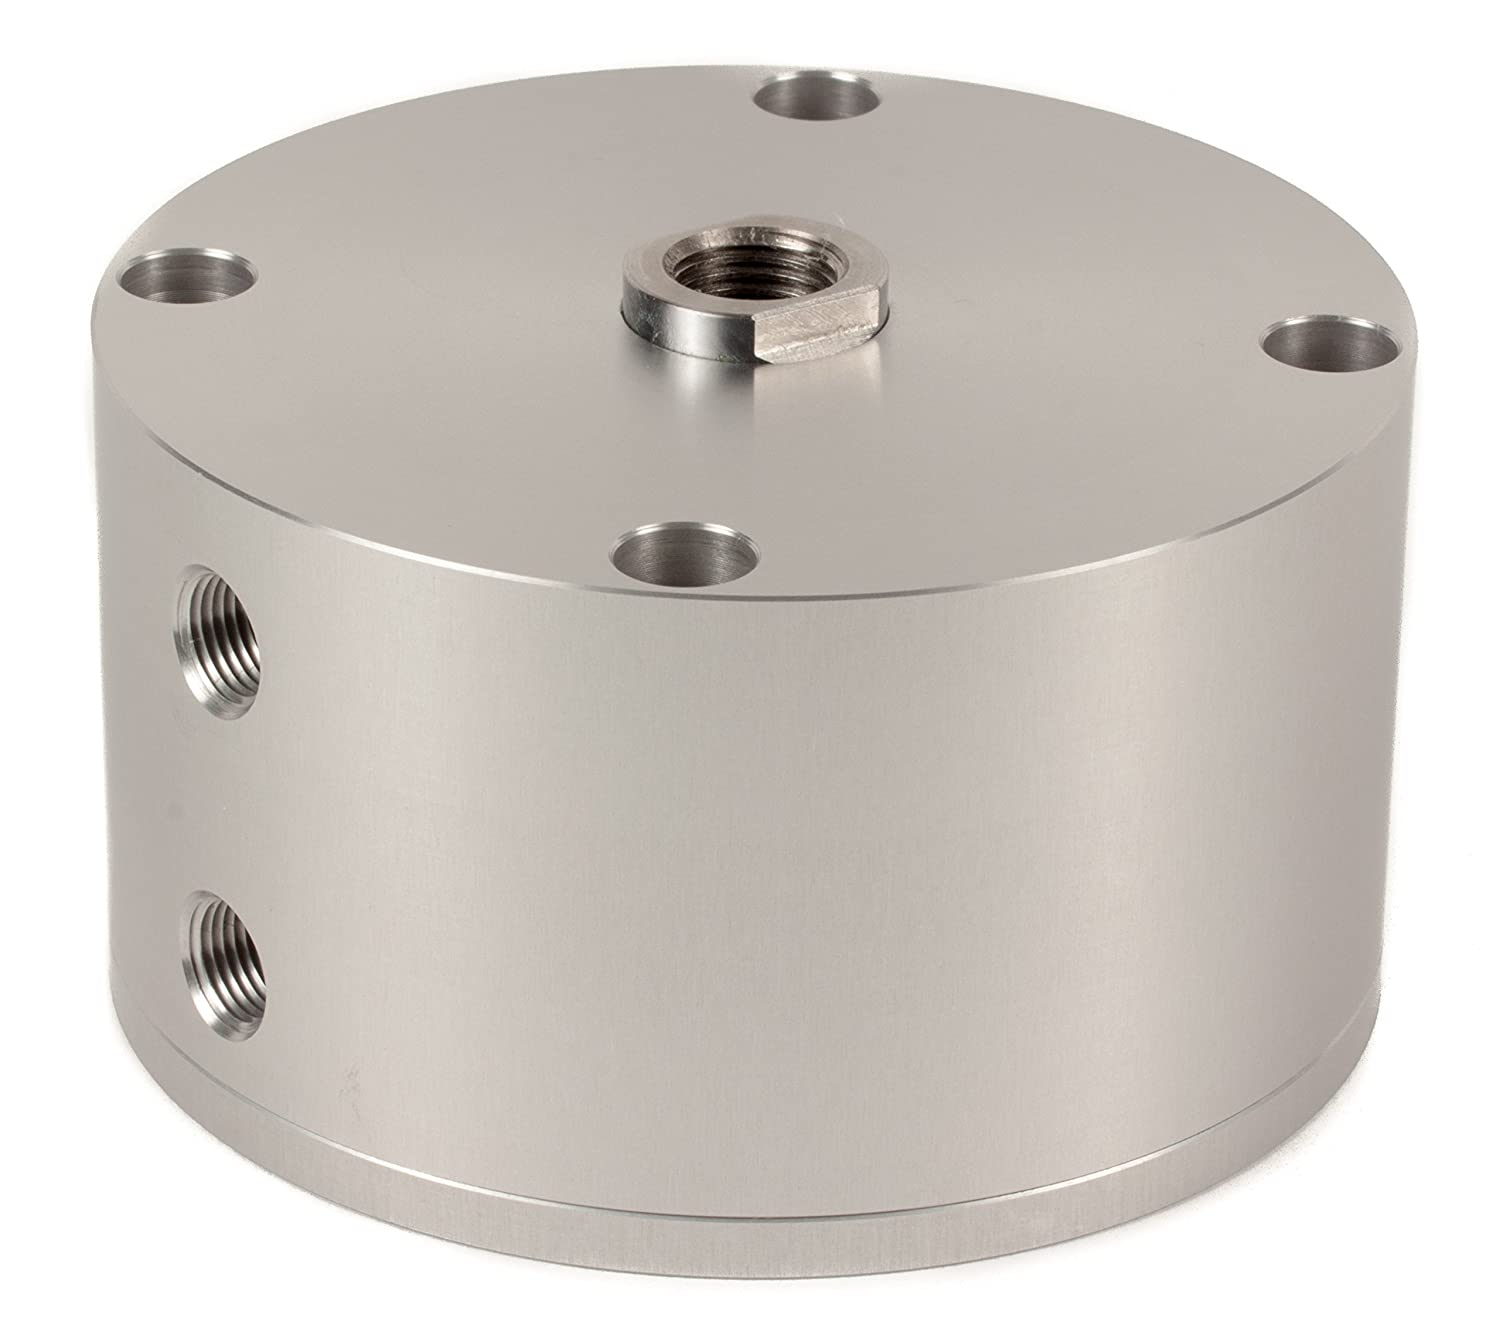 Fabco-Air B-521-X Original Pancake Cylinder, Double Acting, Maximum Pressure of 250 PSI, 2-1/2' Bore Diameter x 3/4' Stroke